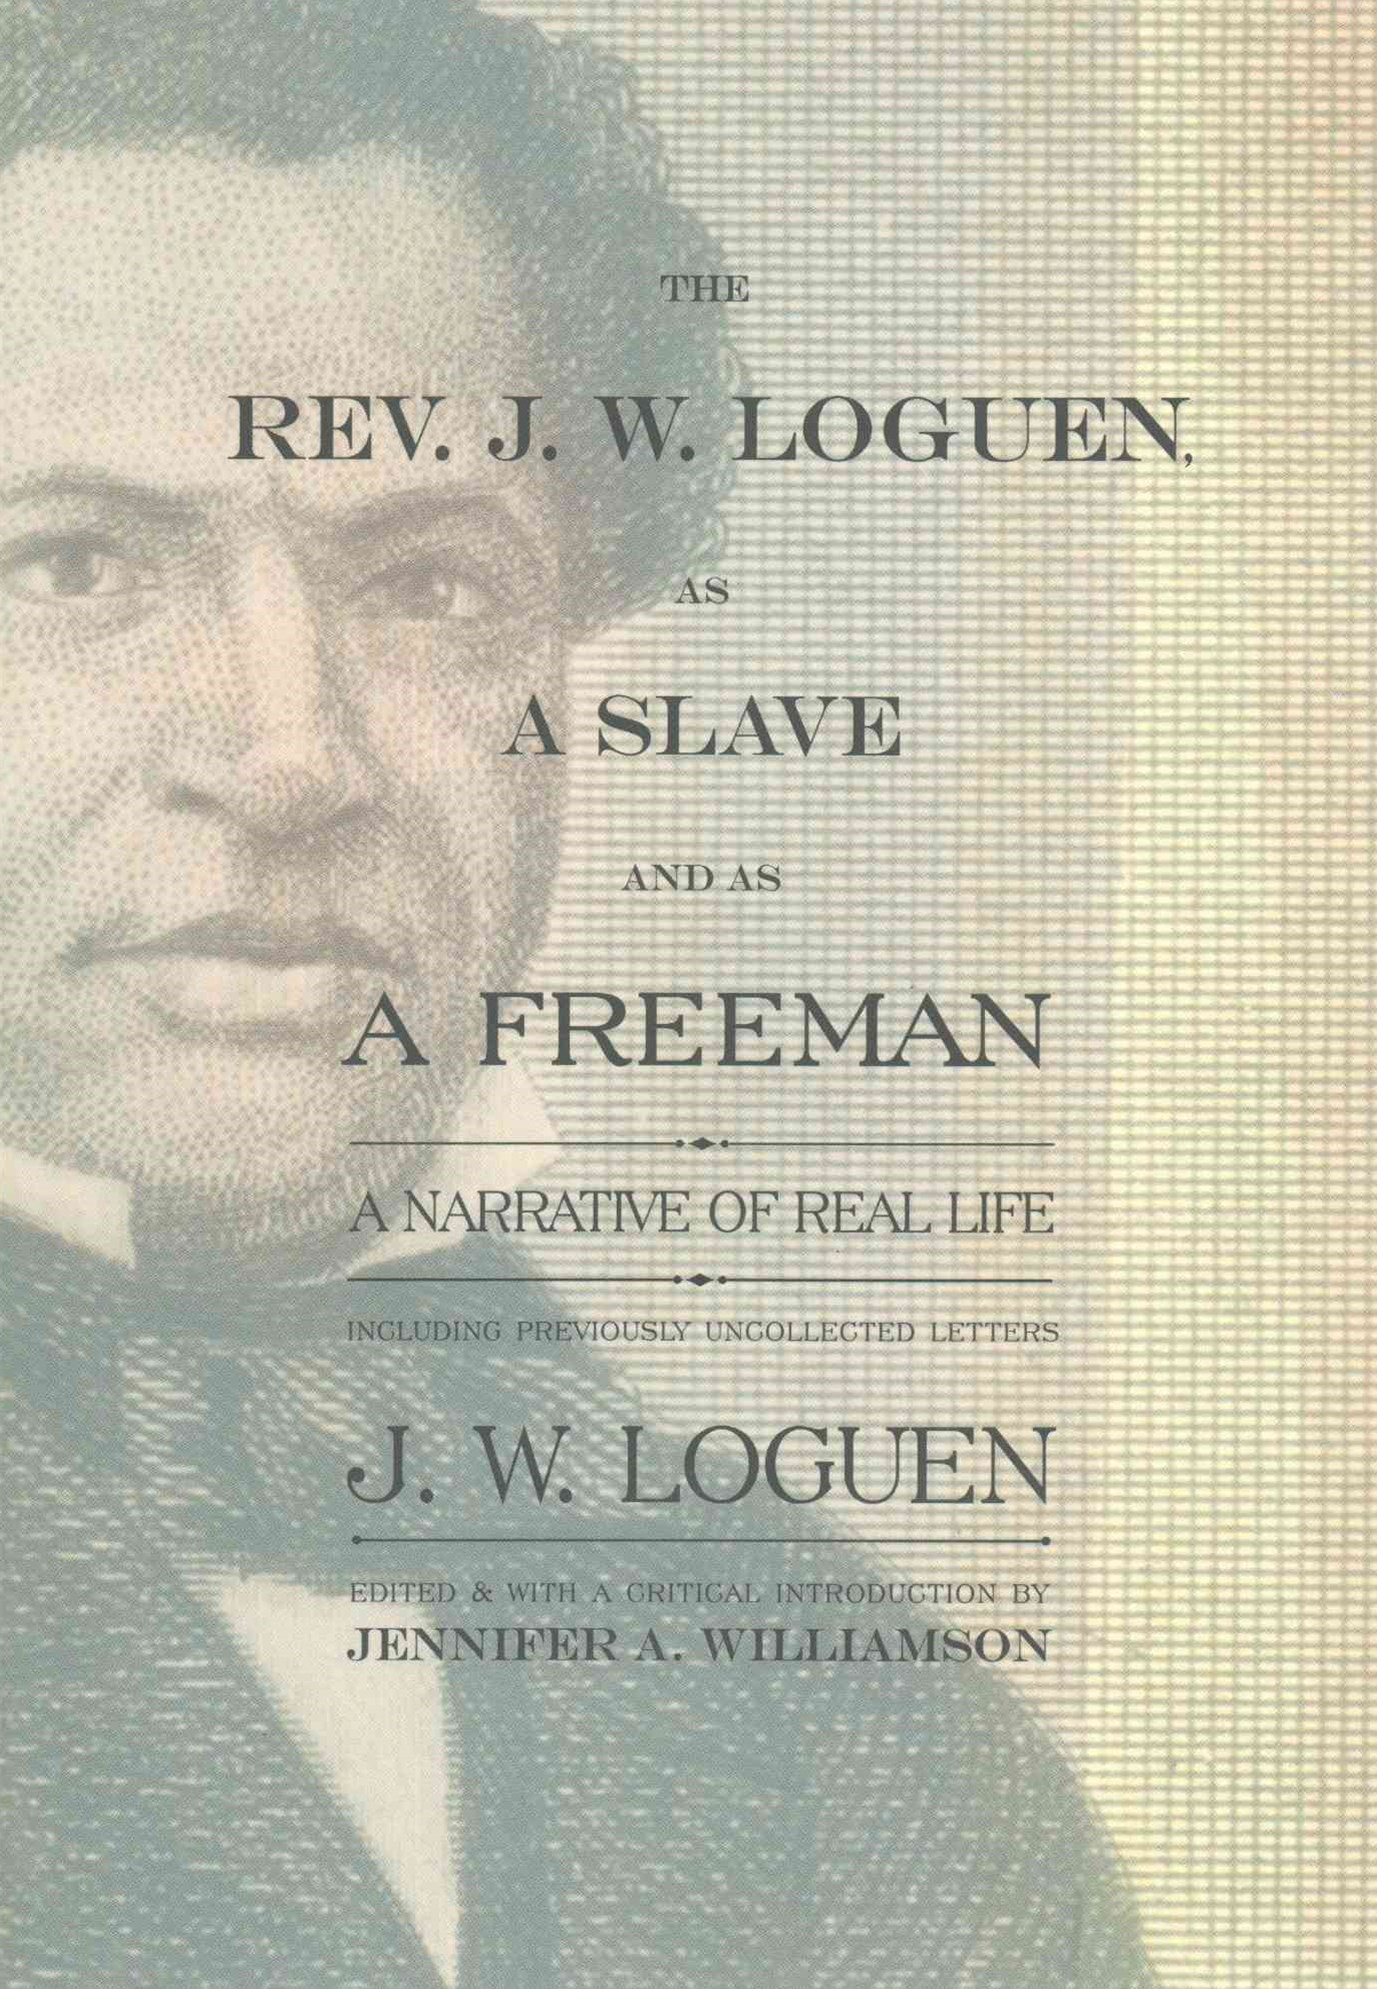 The Rev. J. W. Loguen, As a Slave and As a Freeman